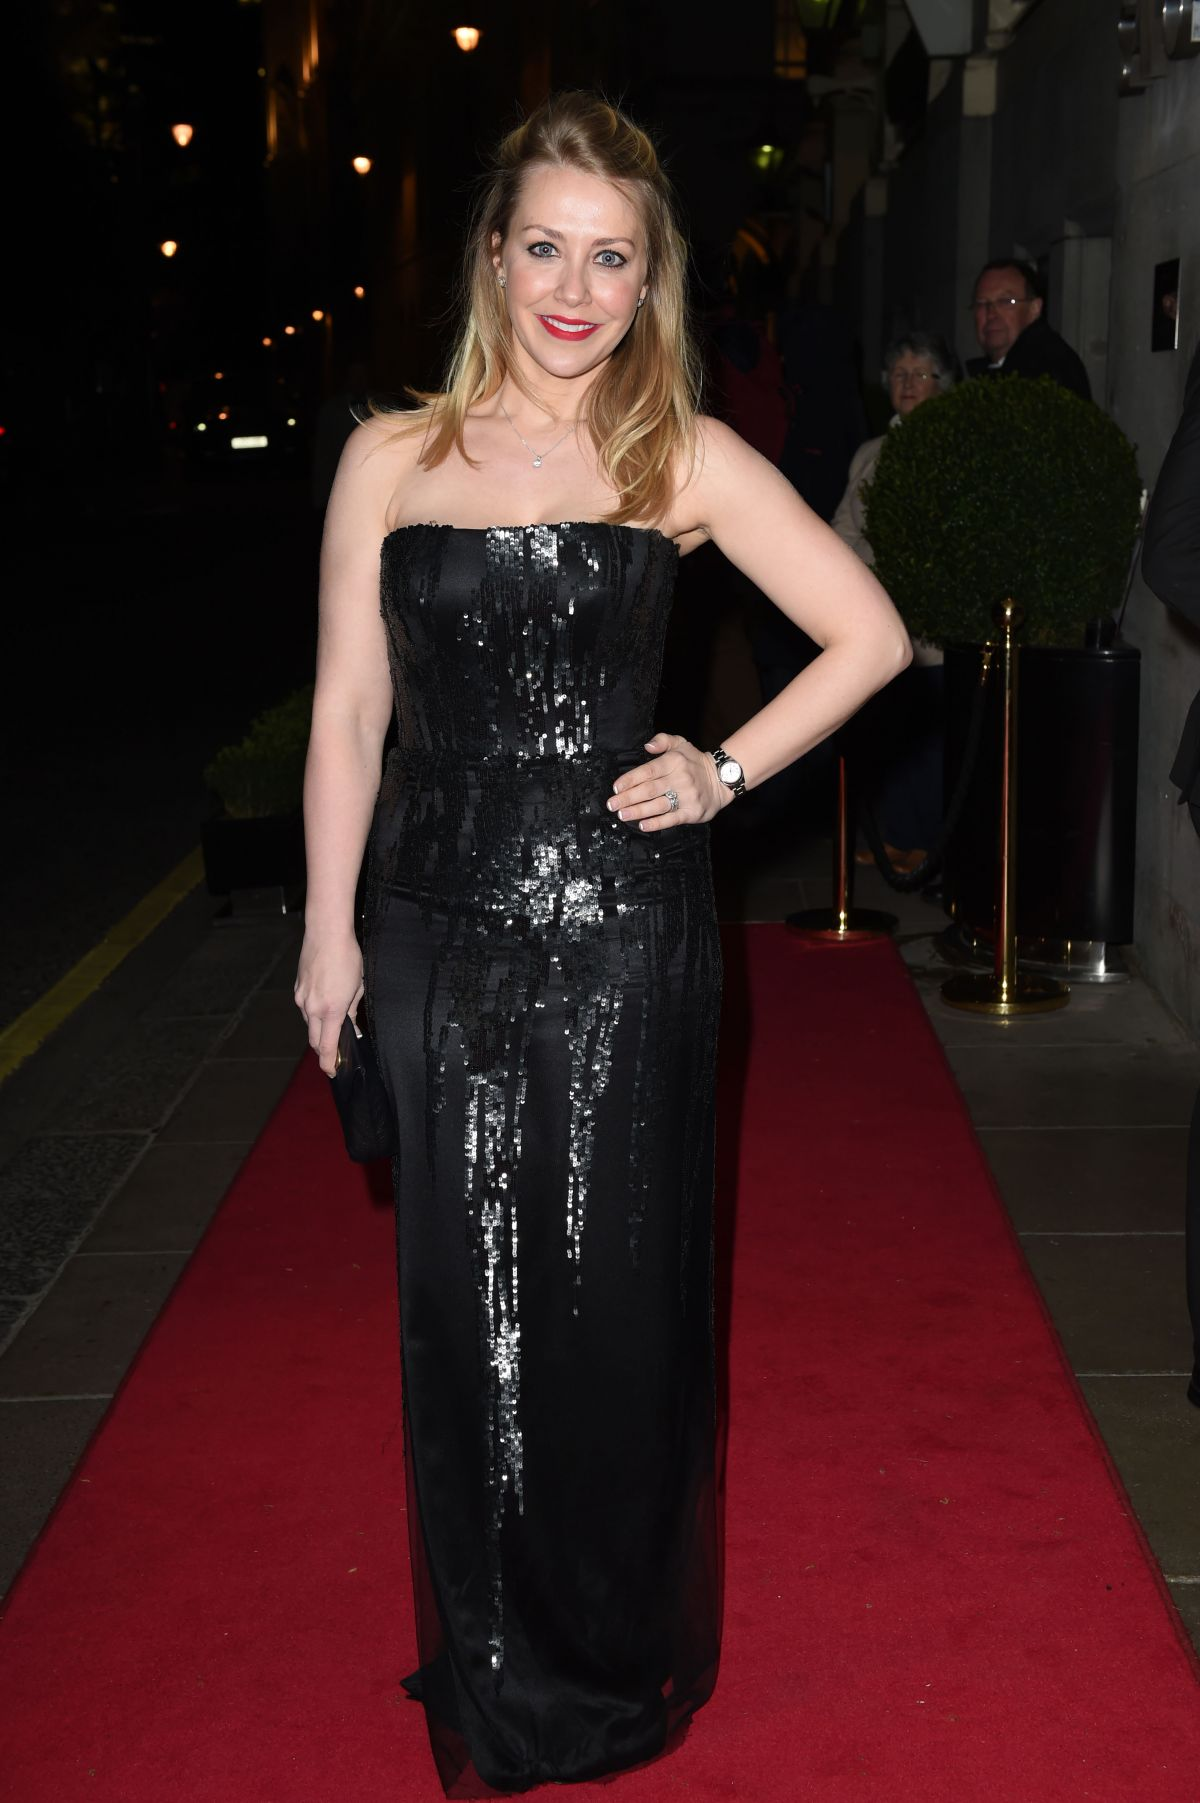 LAURA HAMILTON at VIP Fundraising Dinner in Aid of Helping Hands in London